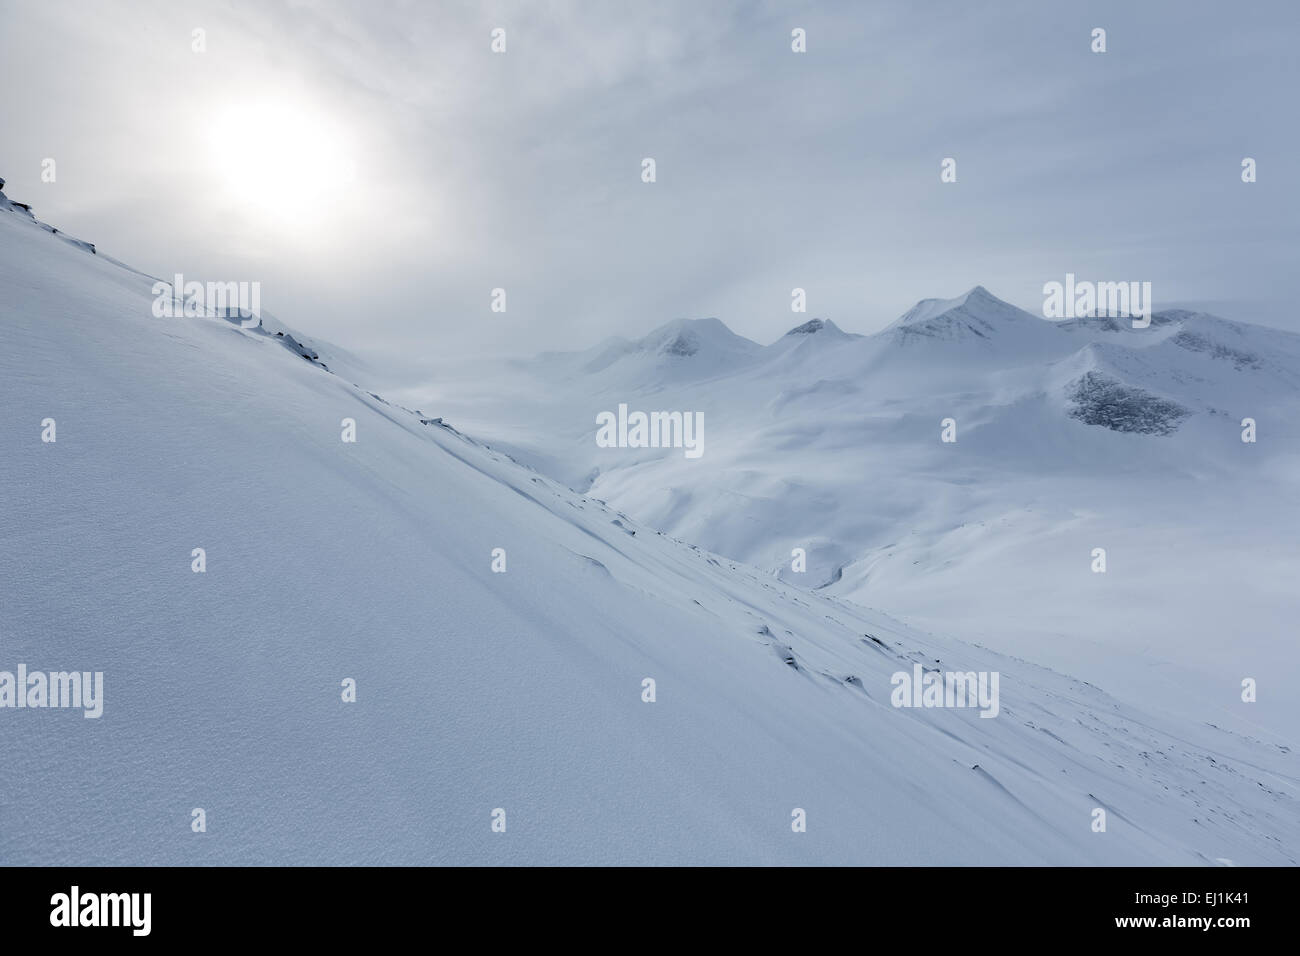 Nallostugan, Kebnekaise mountain area, Kiruna, Sweden, Europe, EU Stock Photo